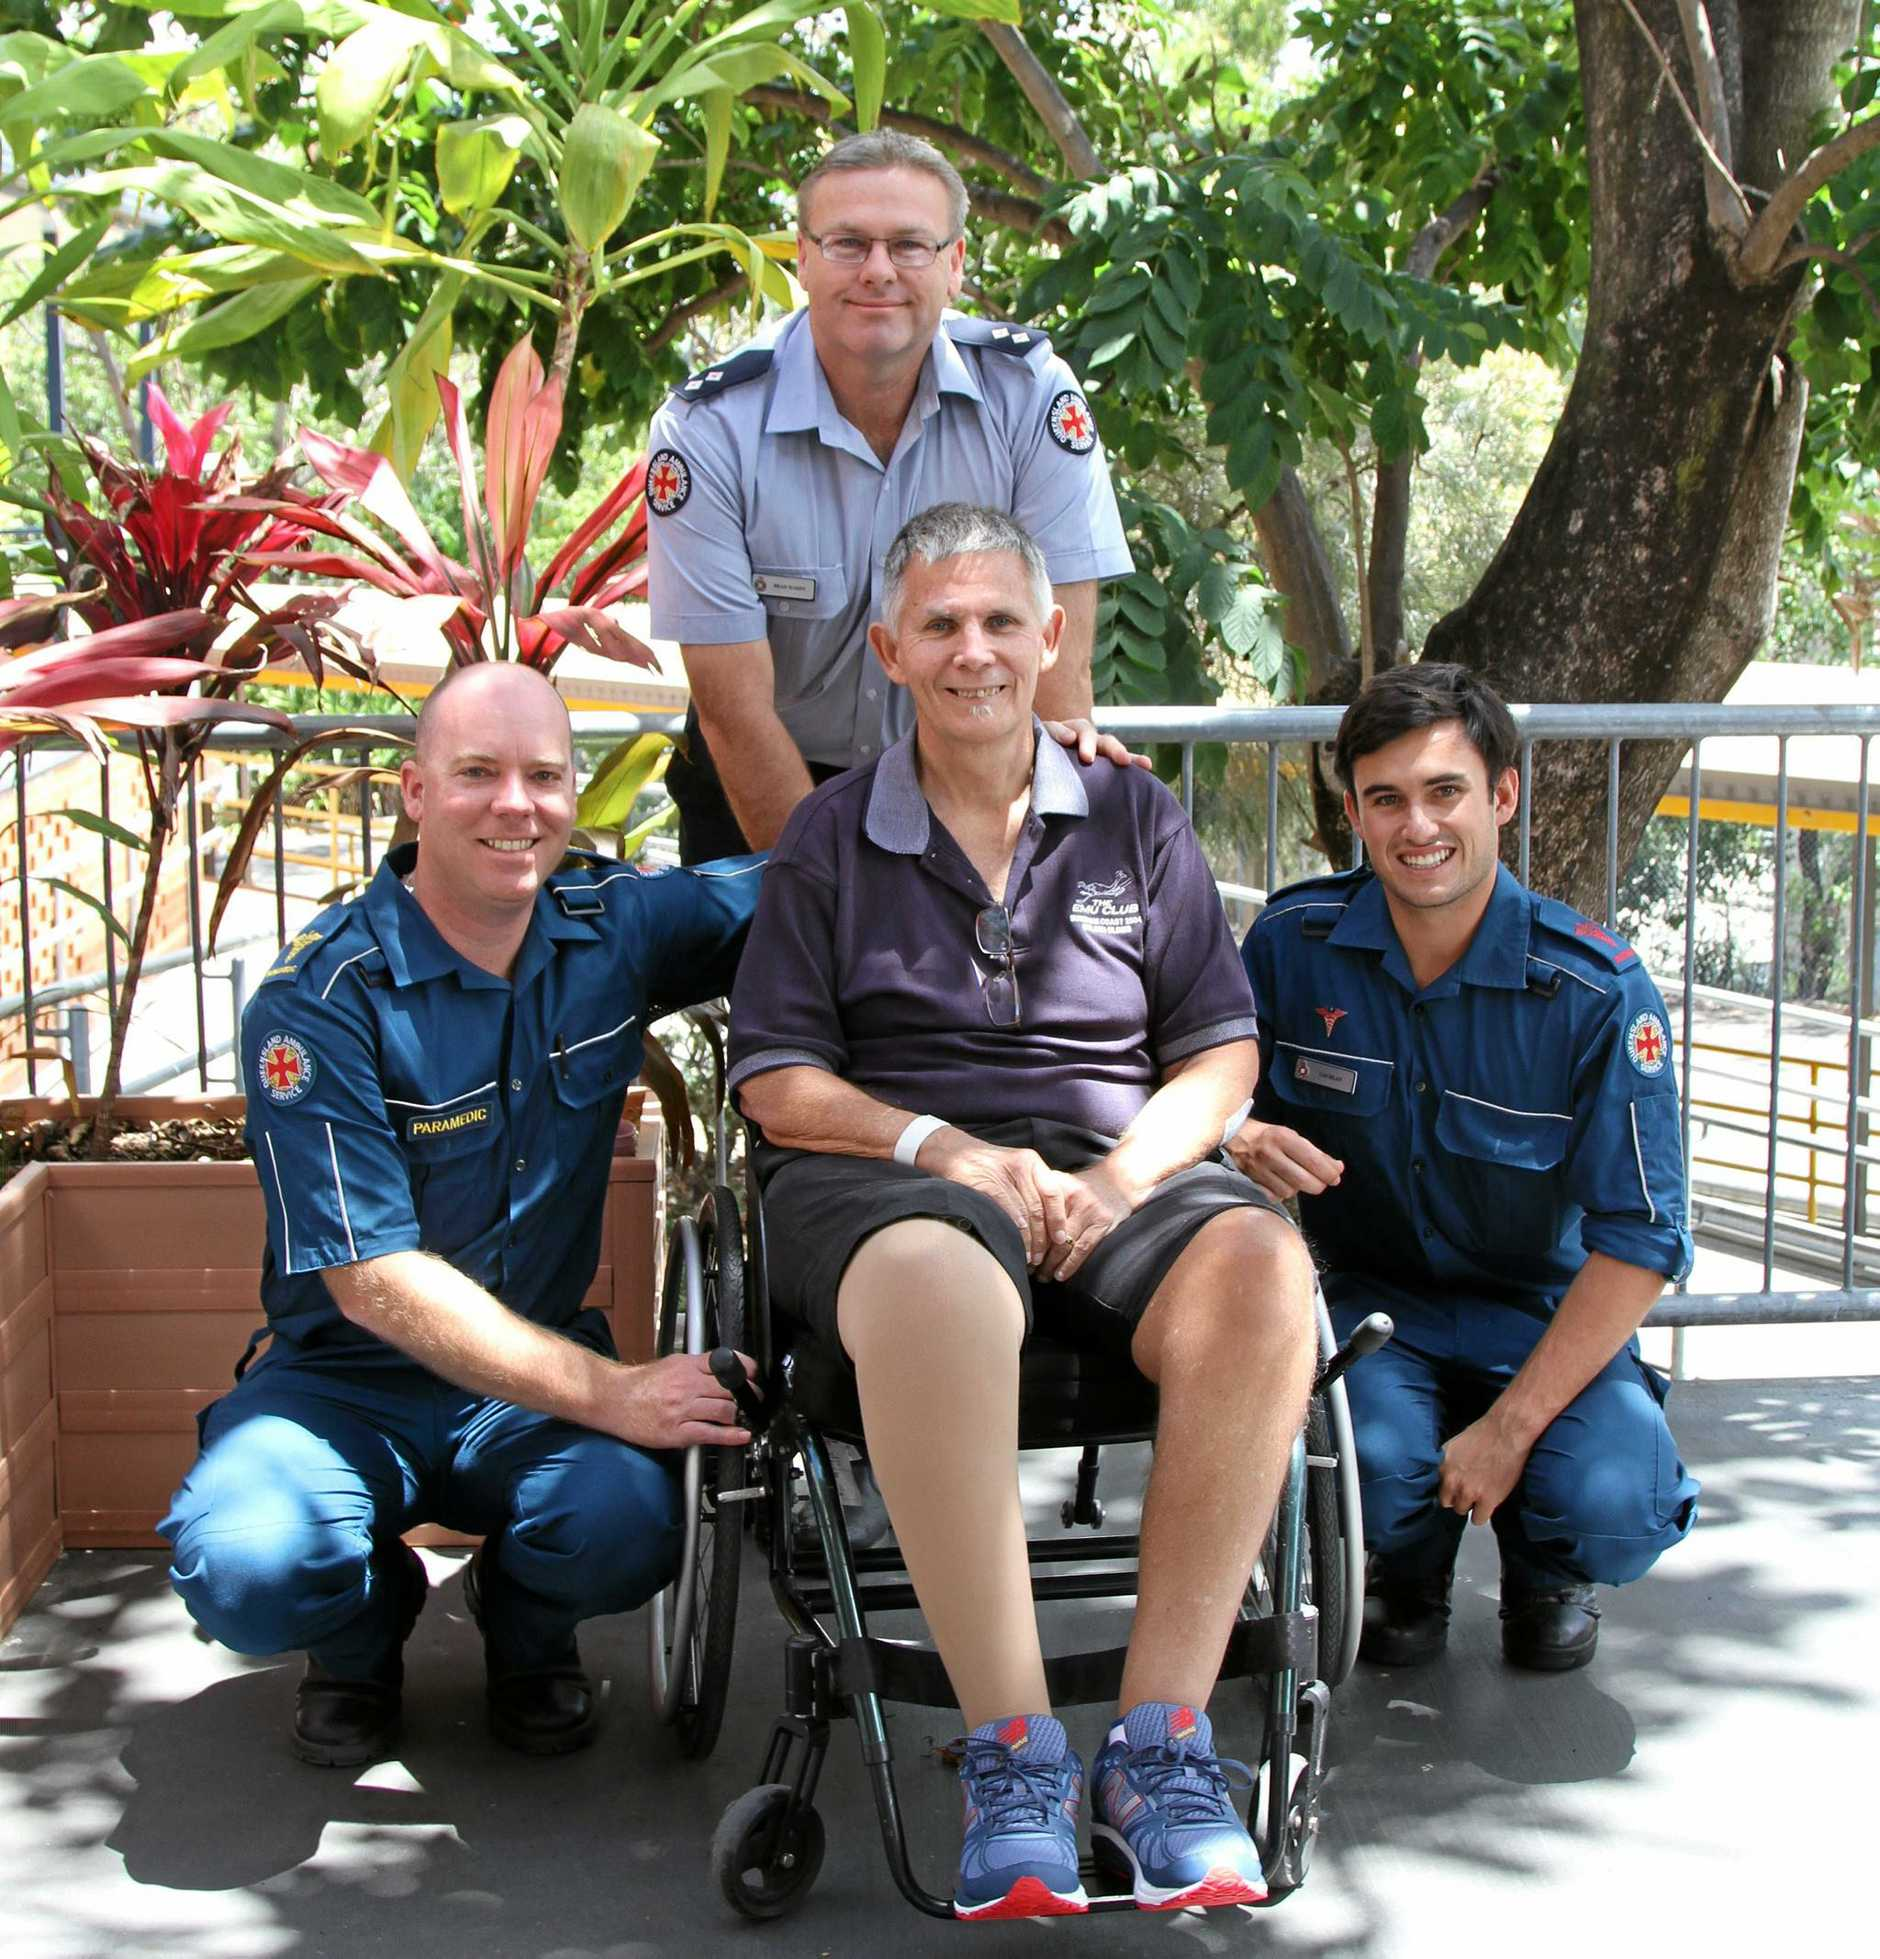 Graham was reunited with the paramedics who came to his aid in August 2016.